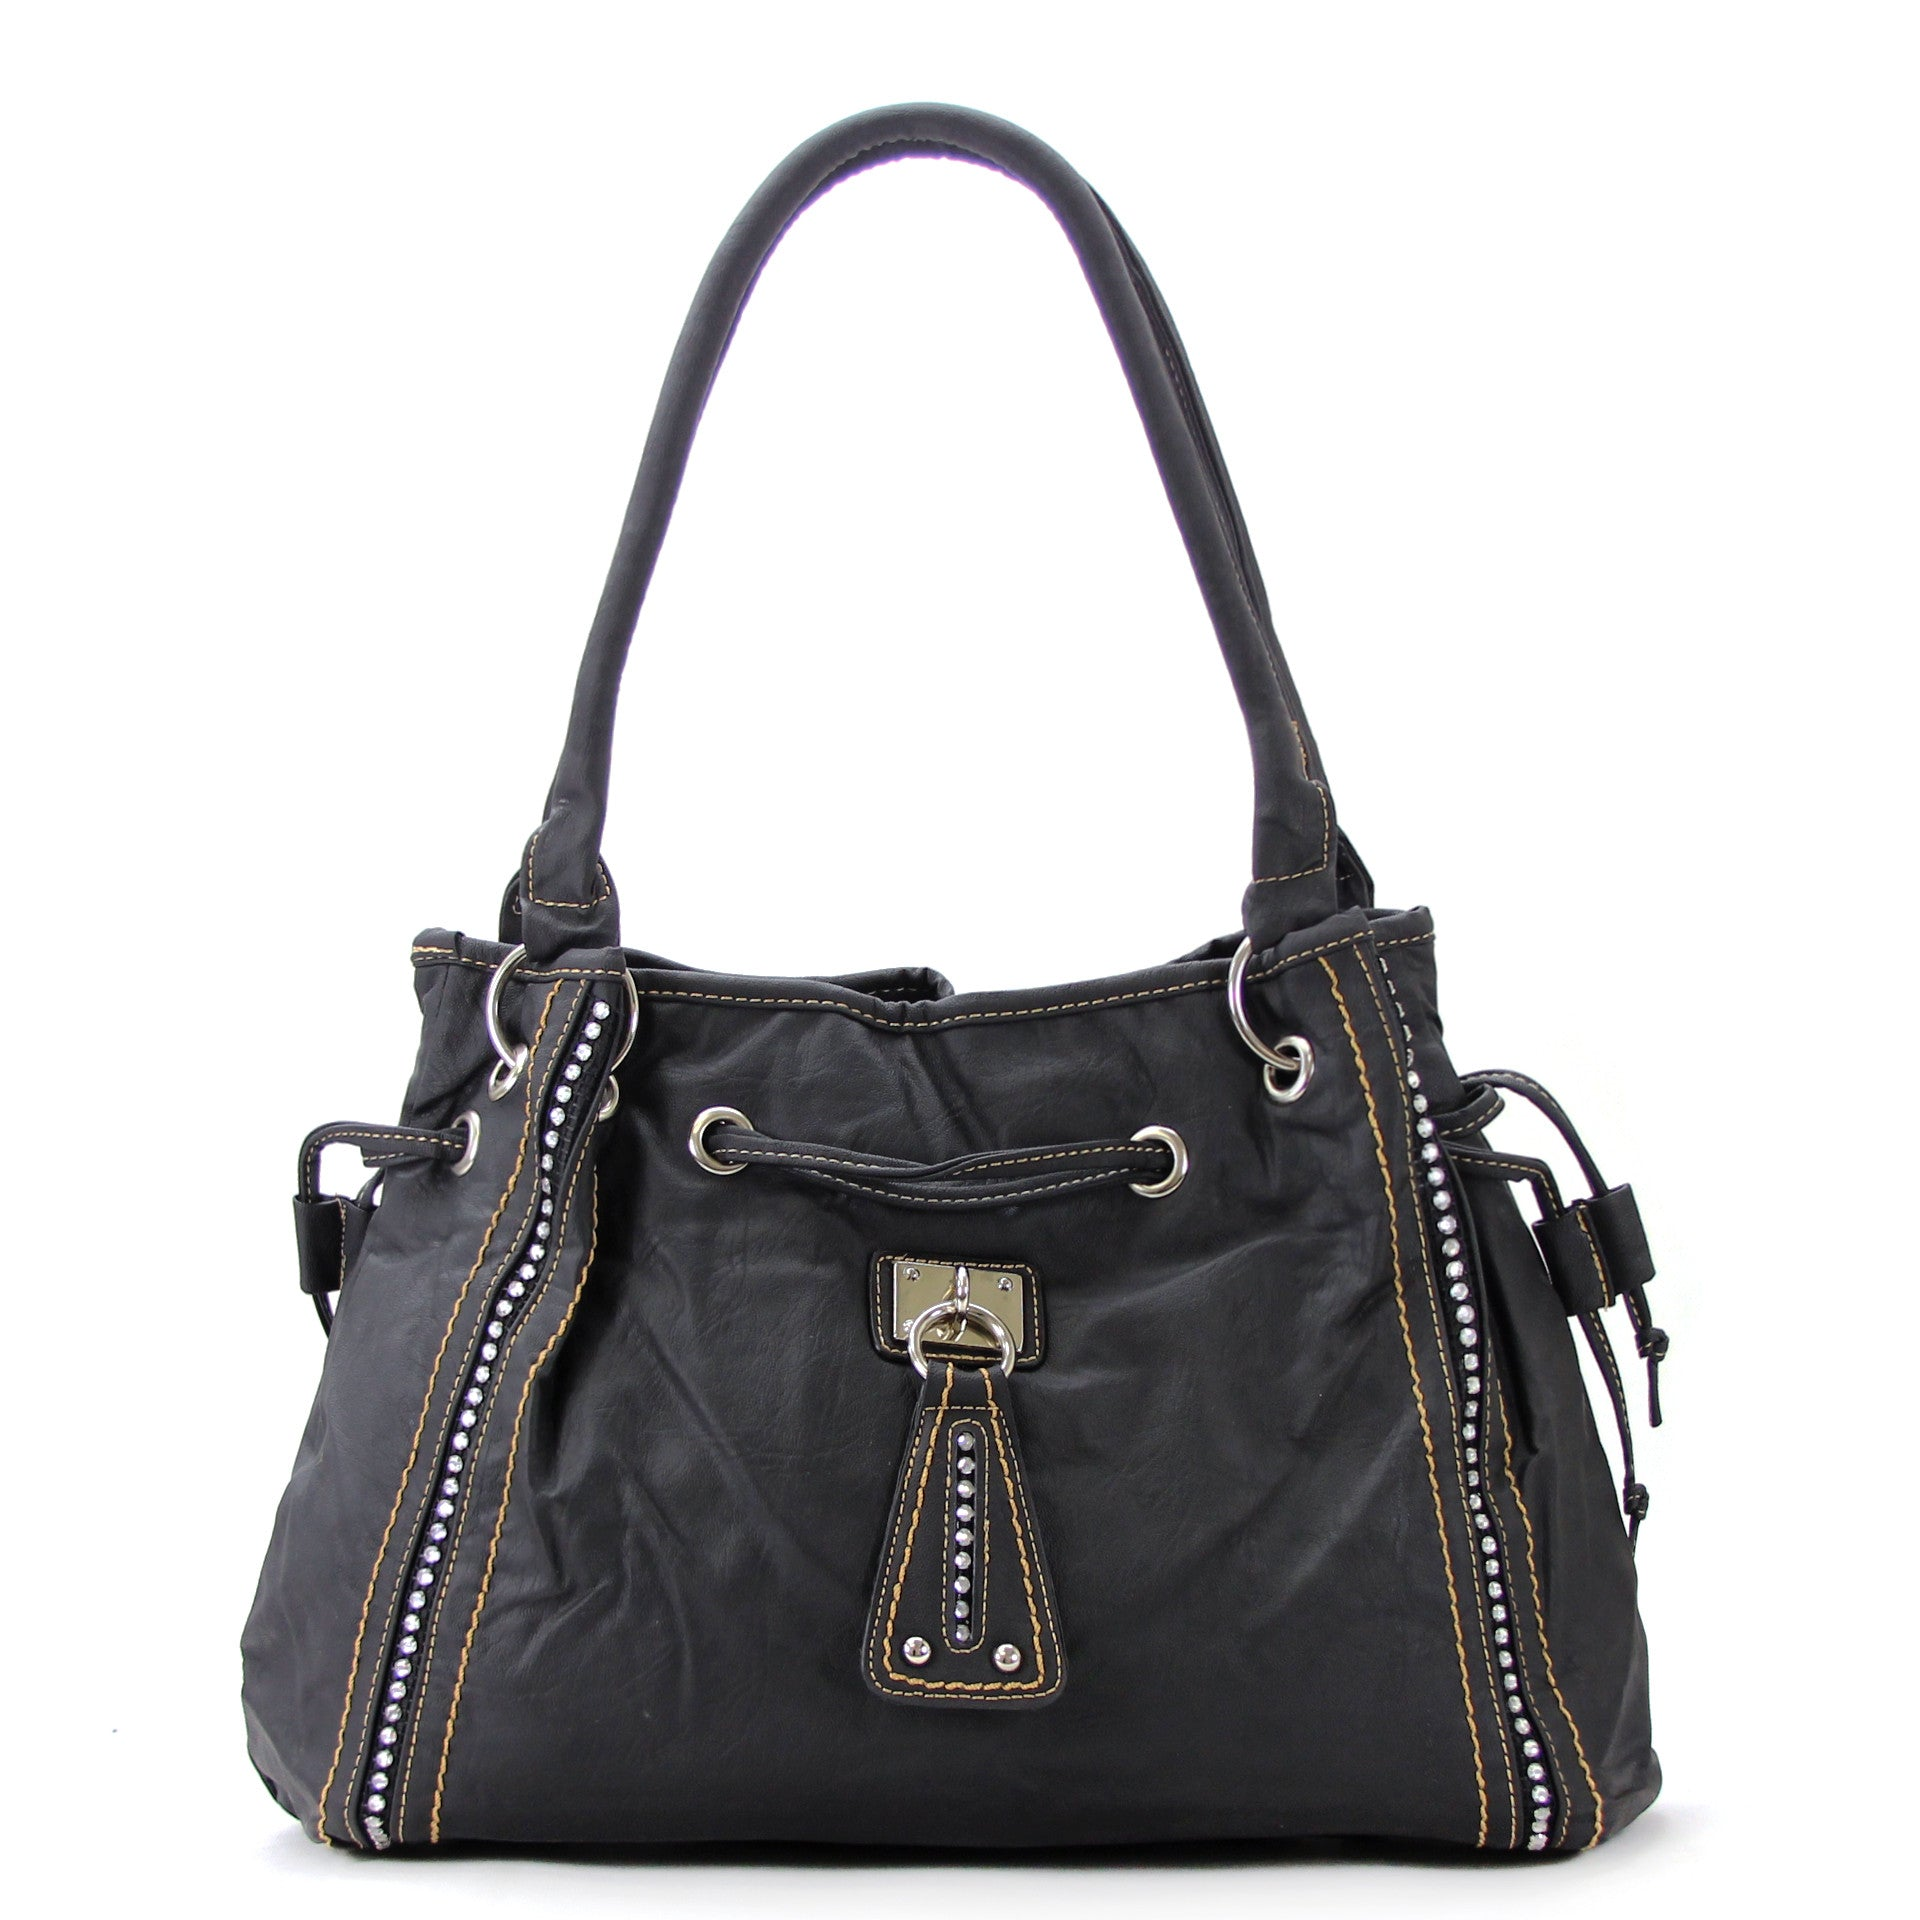 Everyday Casual Cinch Purse Handbag Tote Bag - Black - Pop Fashion